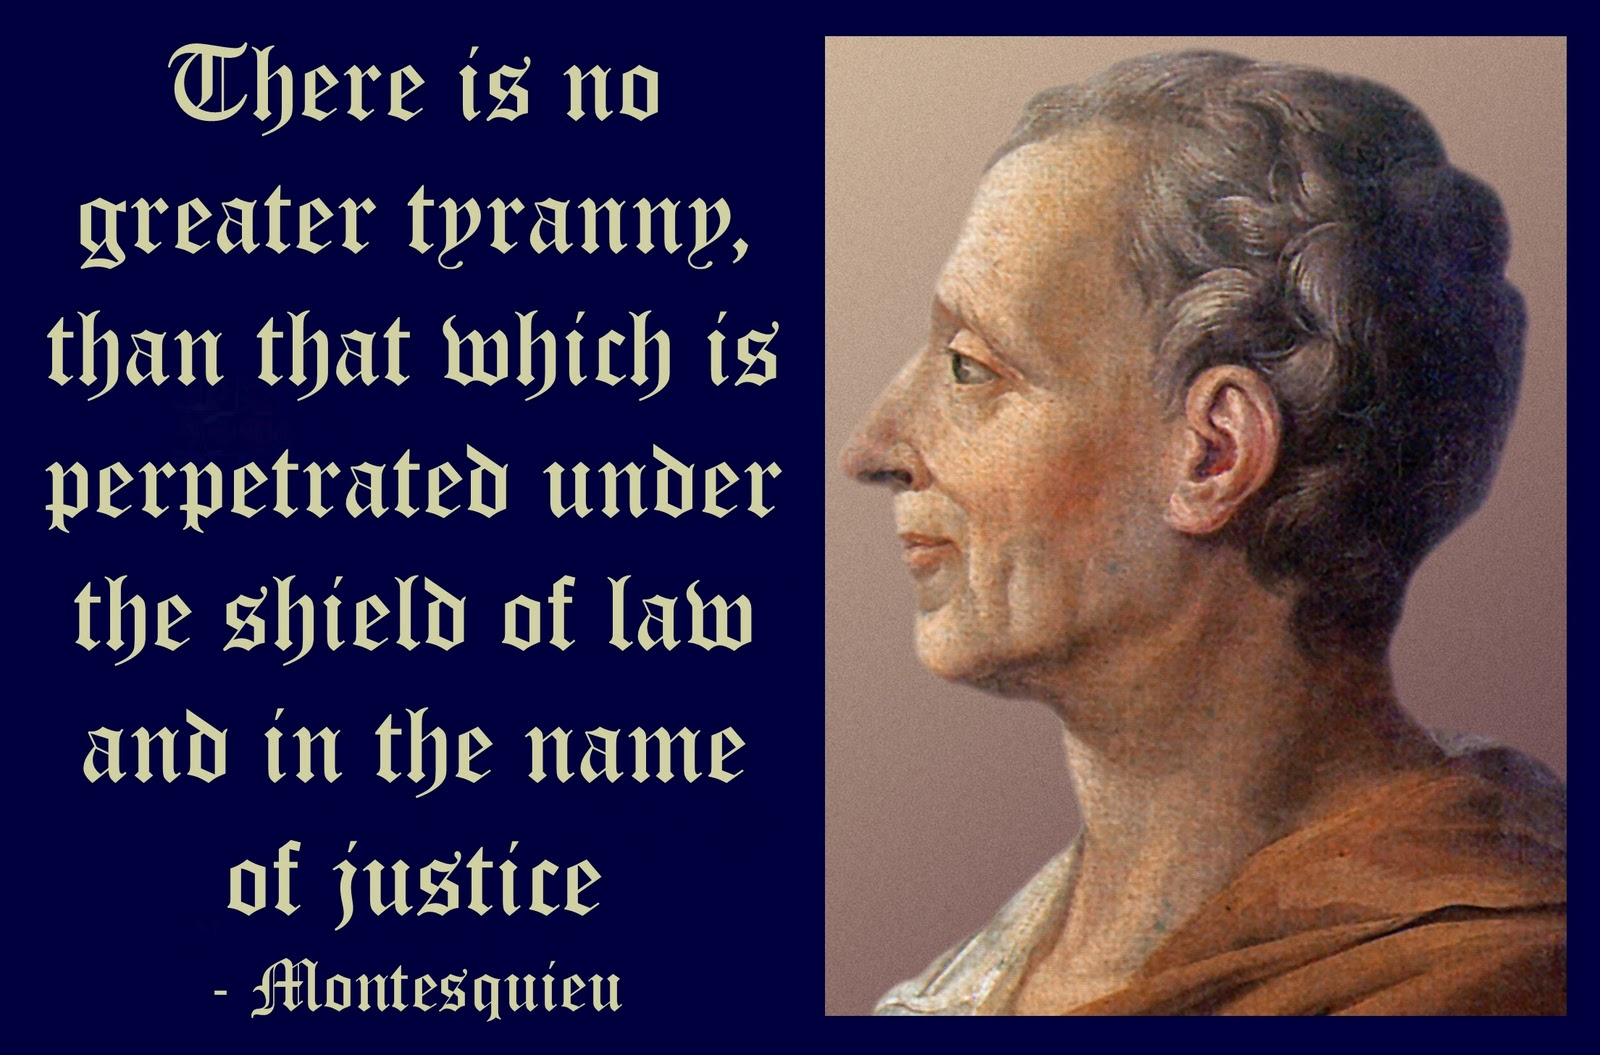 tyranny associated with typically the masses